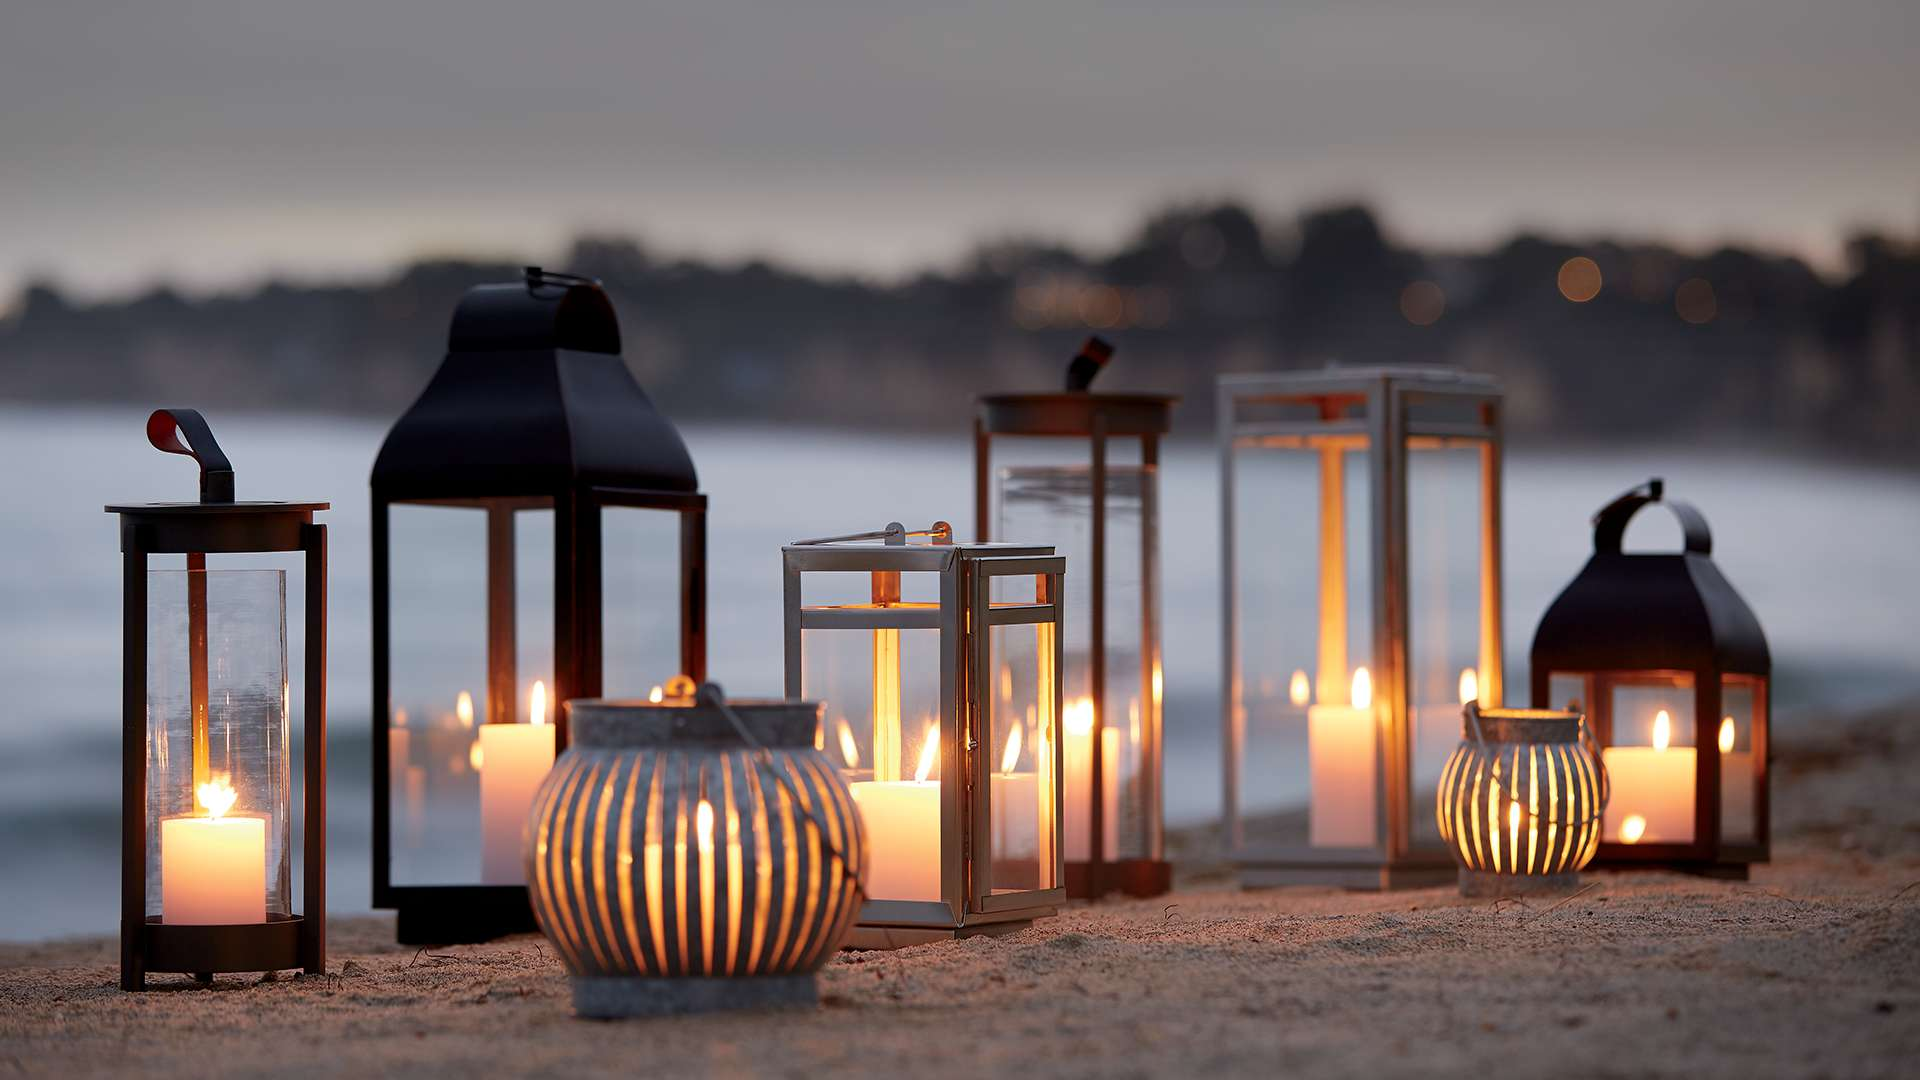 Outdoor Lanterns and Candle Holders lit on a beach